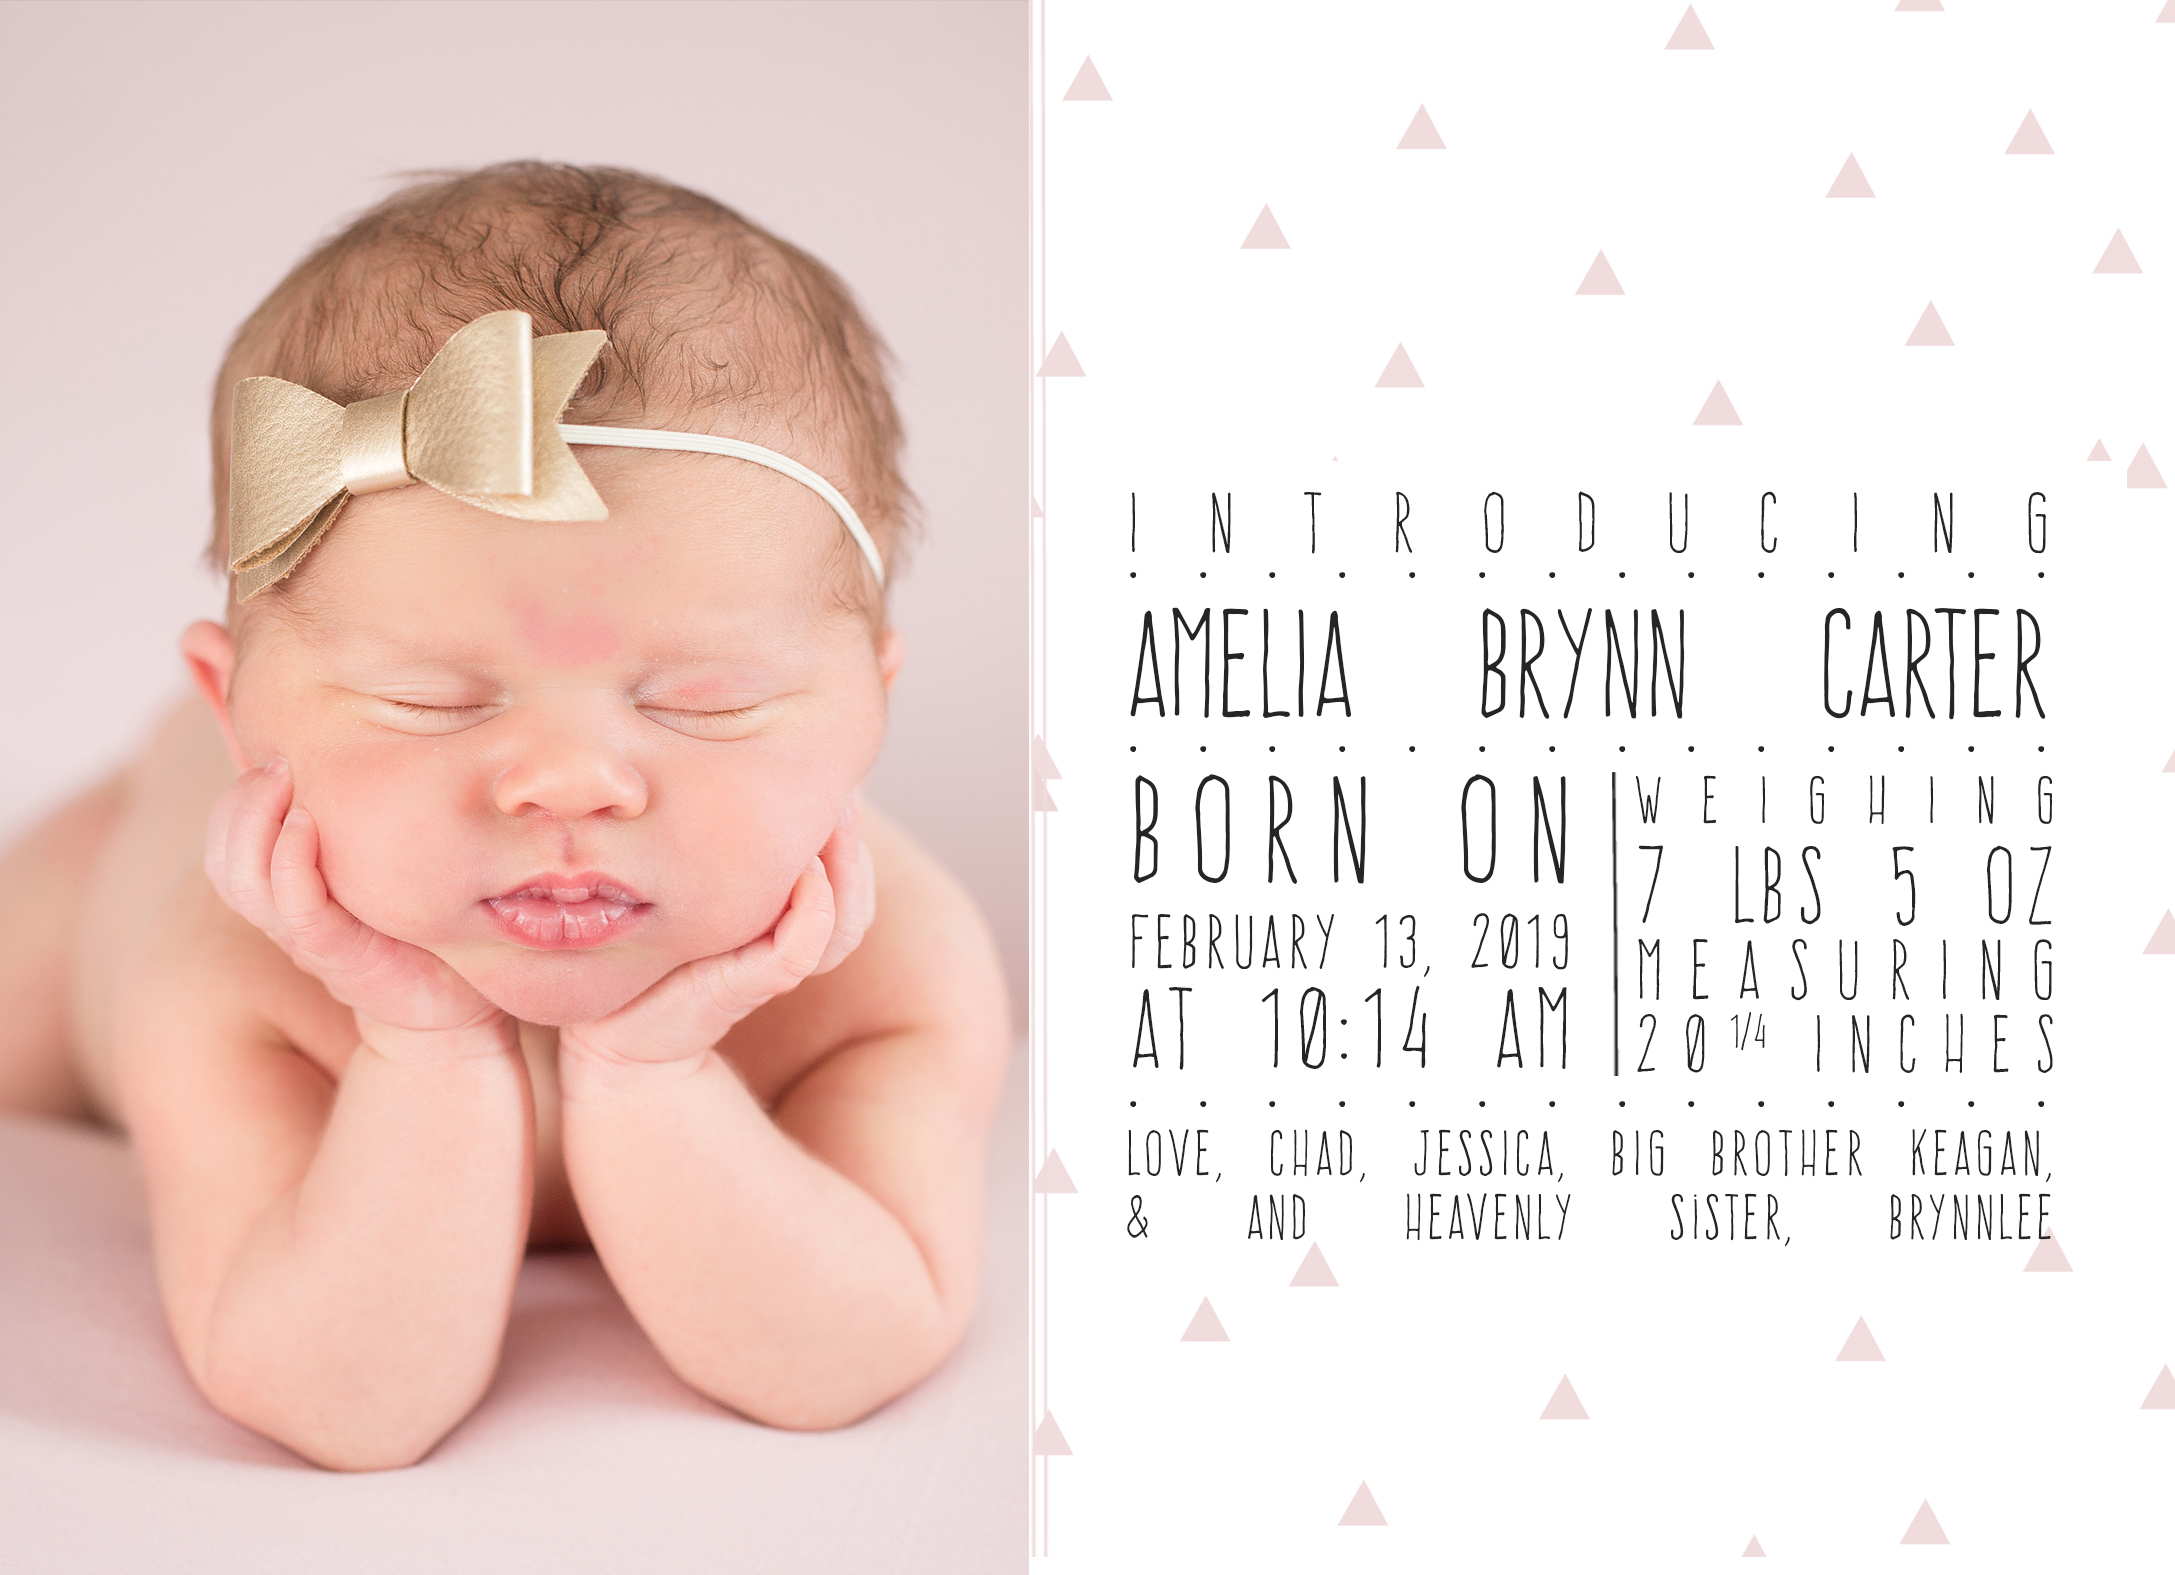 carter Birth Announcement_Frontpsd.jpg